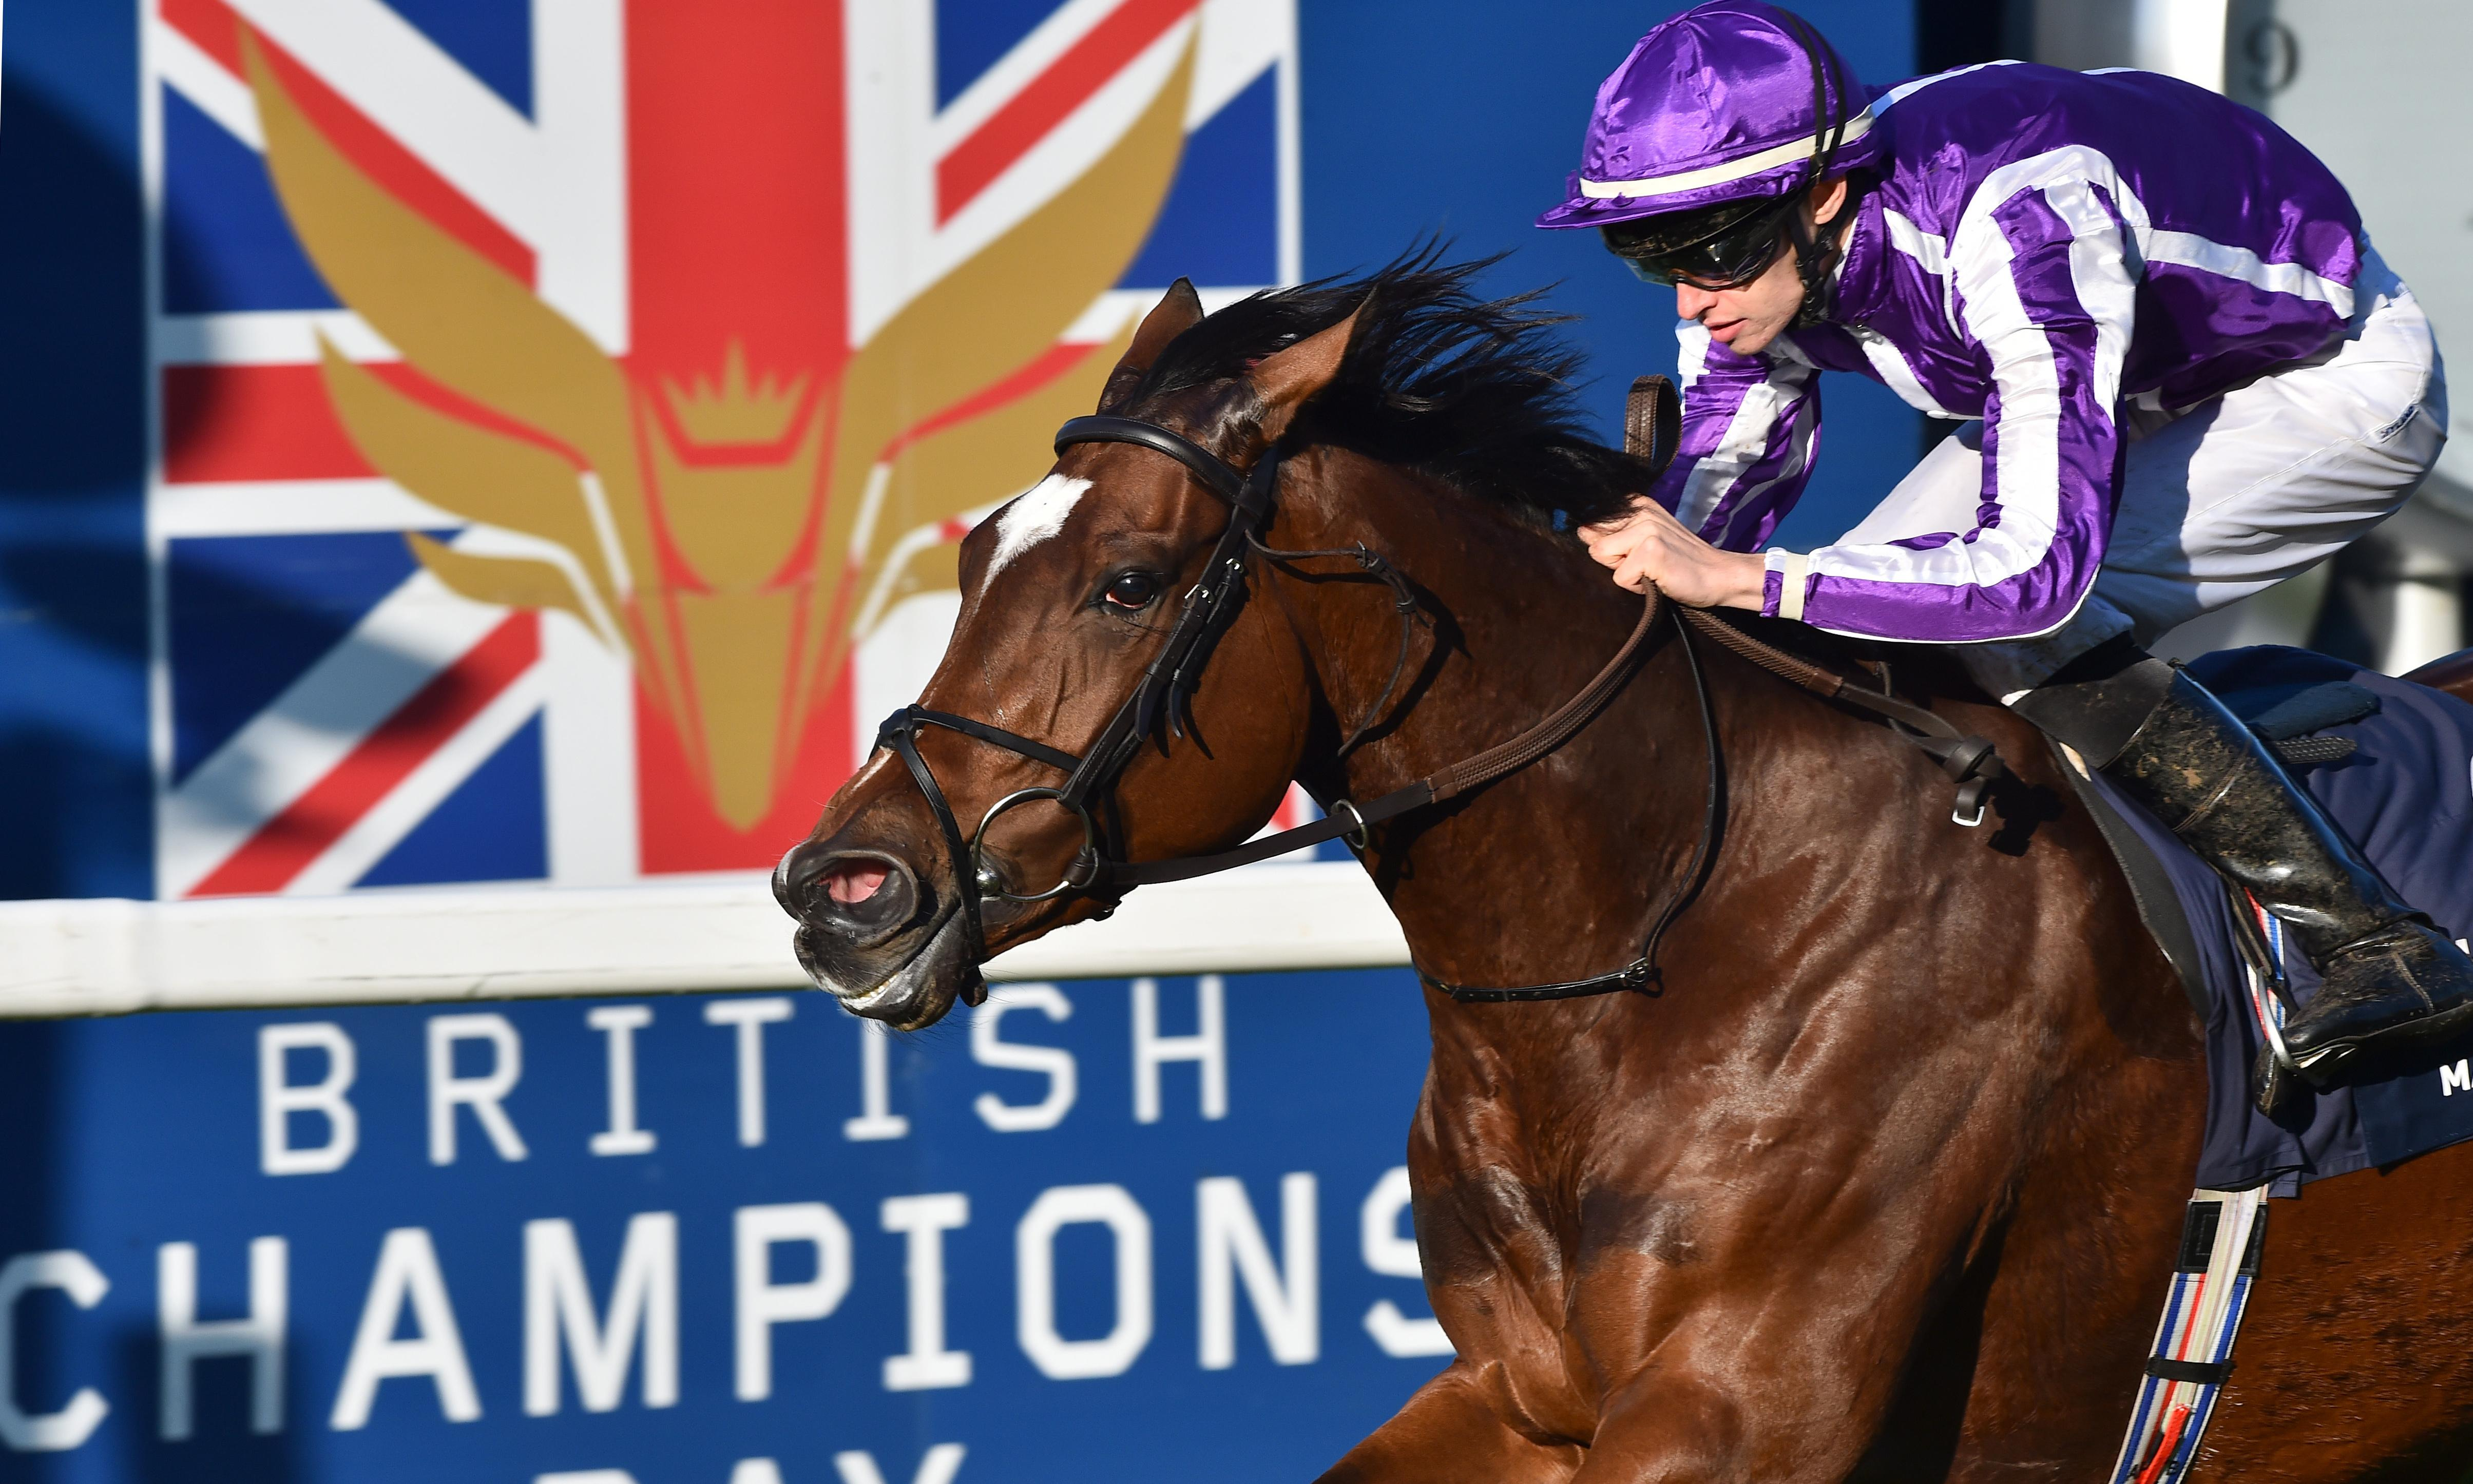 Magical battles home to win first Champion Stakes at Ascot for Aidan O'Brien